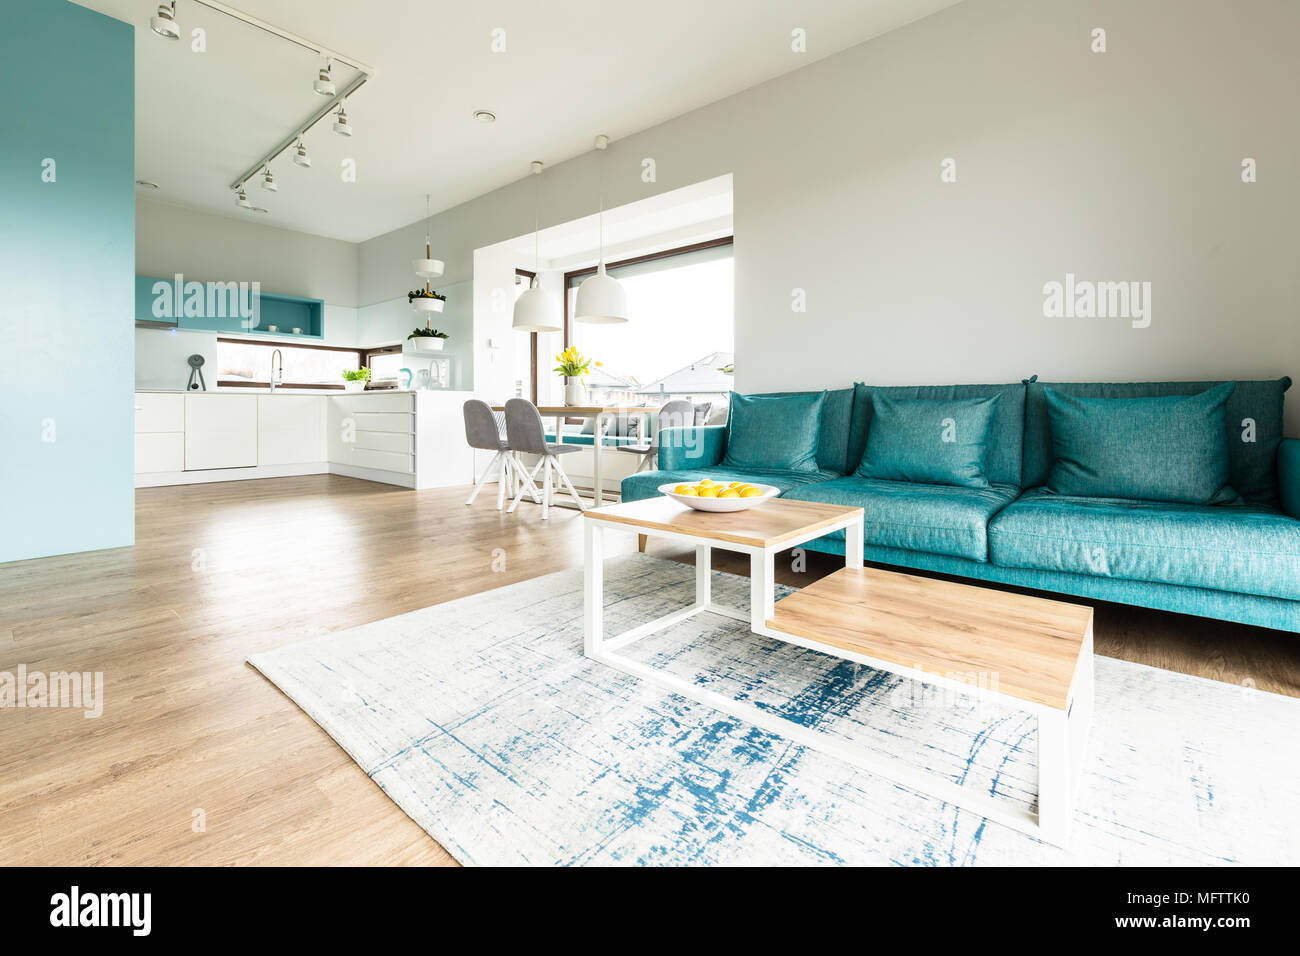 White and turquoise open space house interior with big sofa modern kitchen and a dining table by large windows